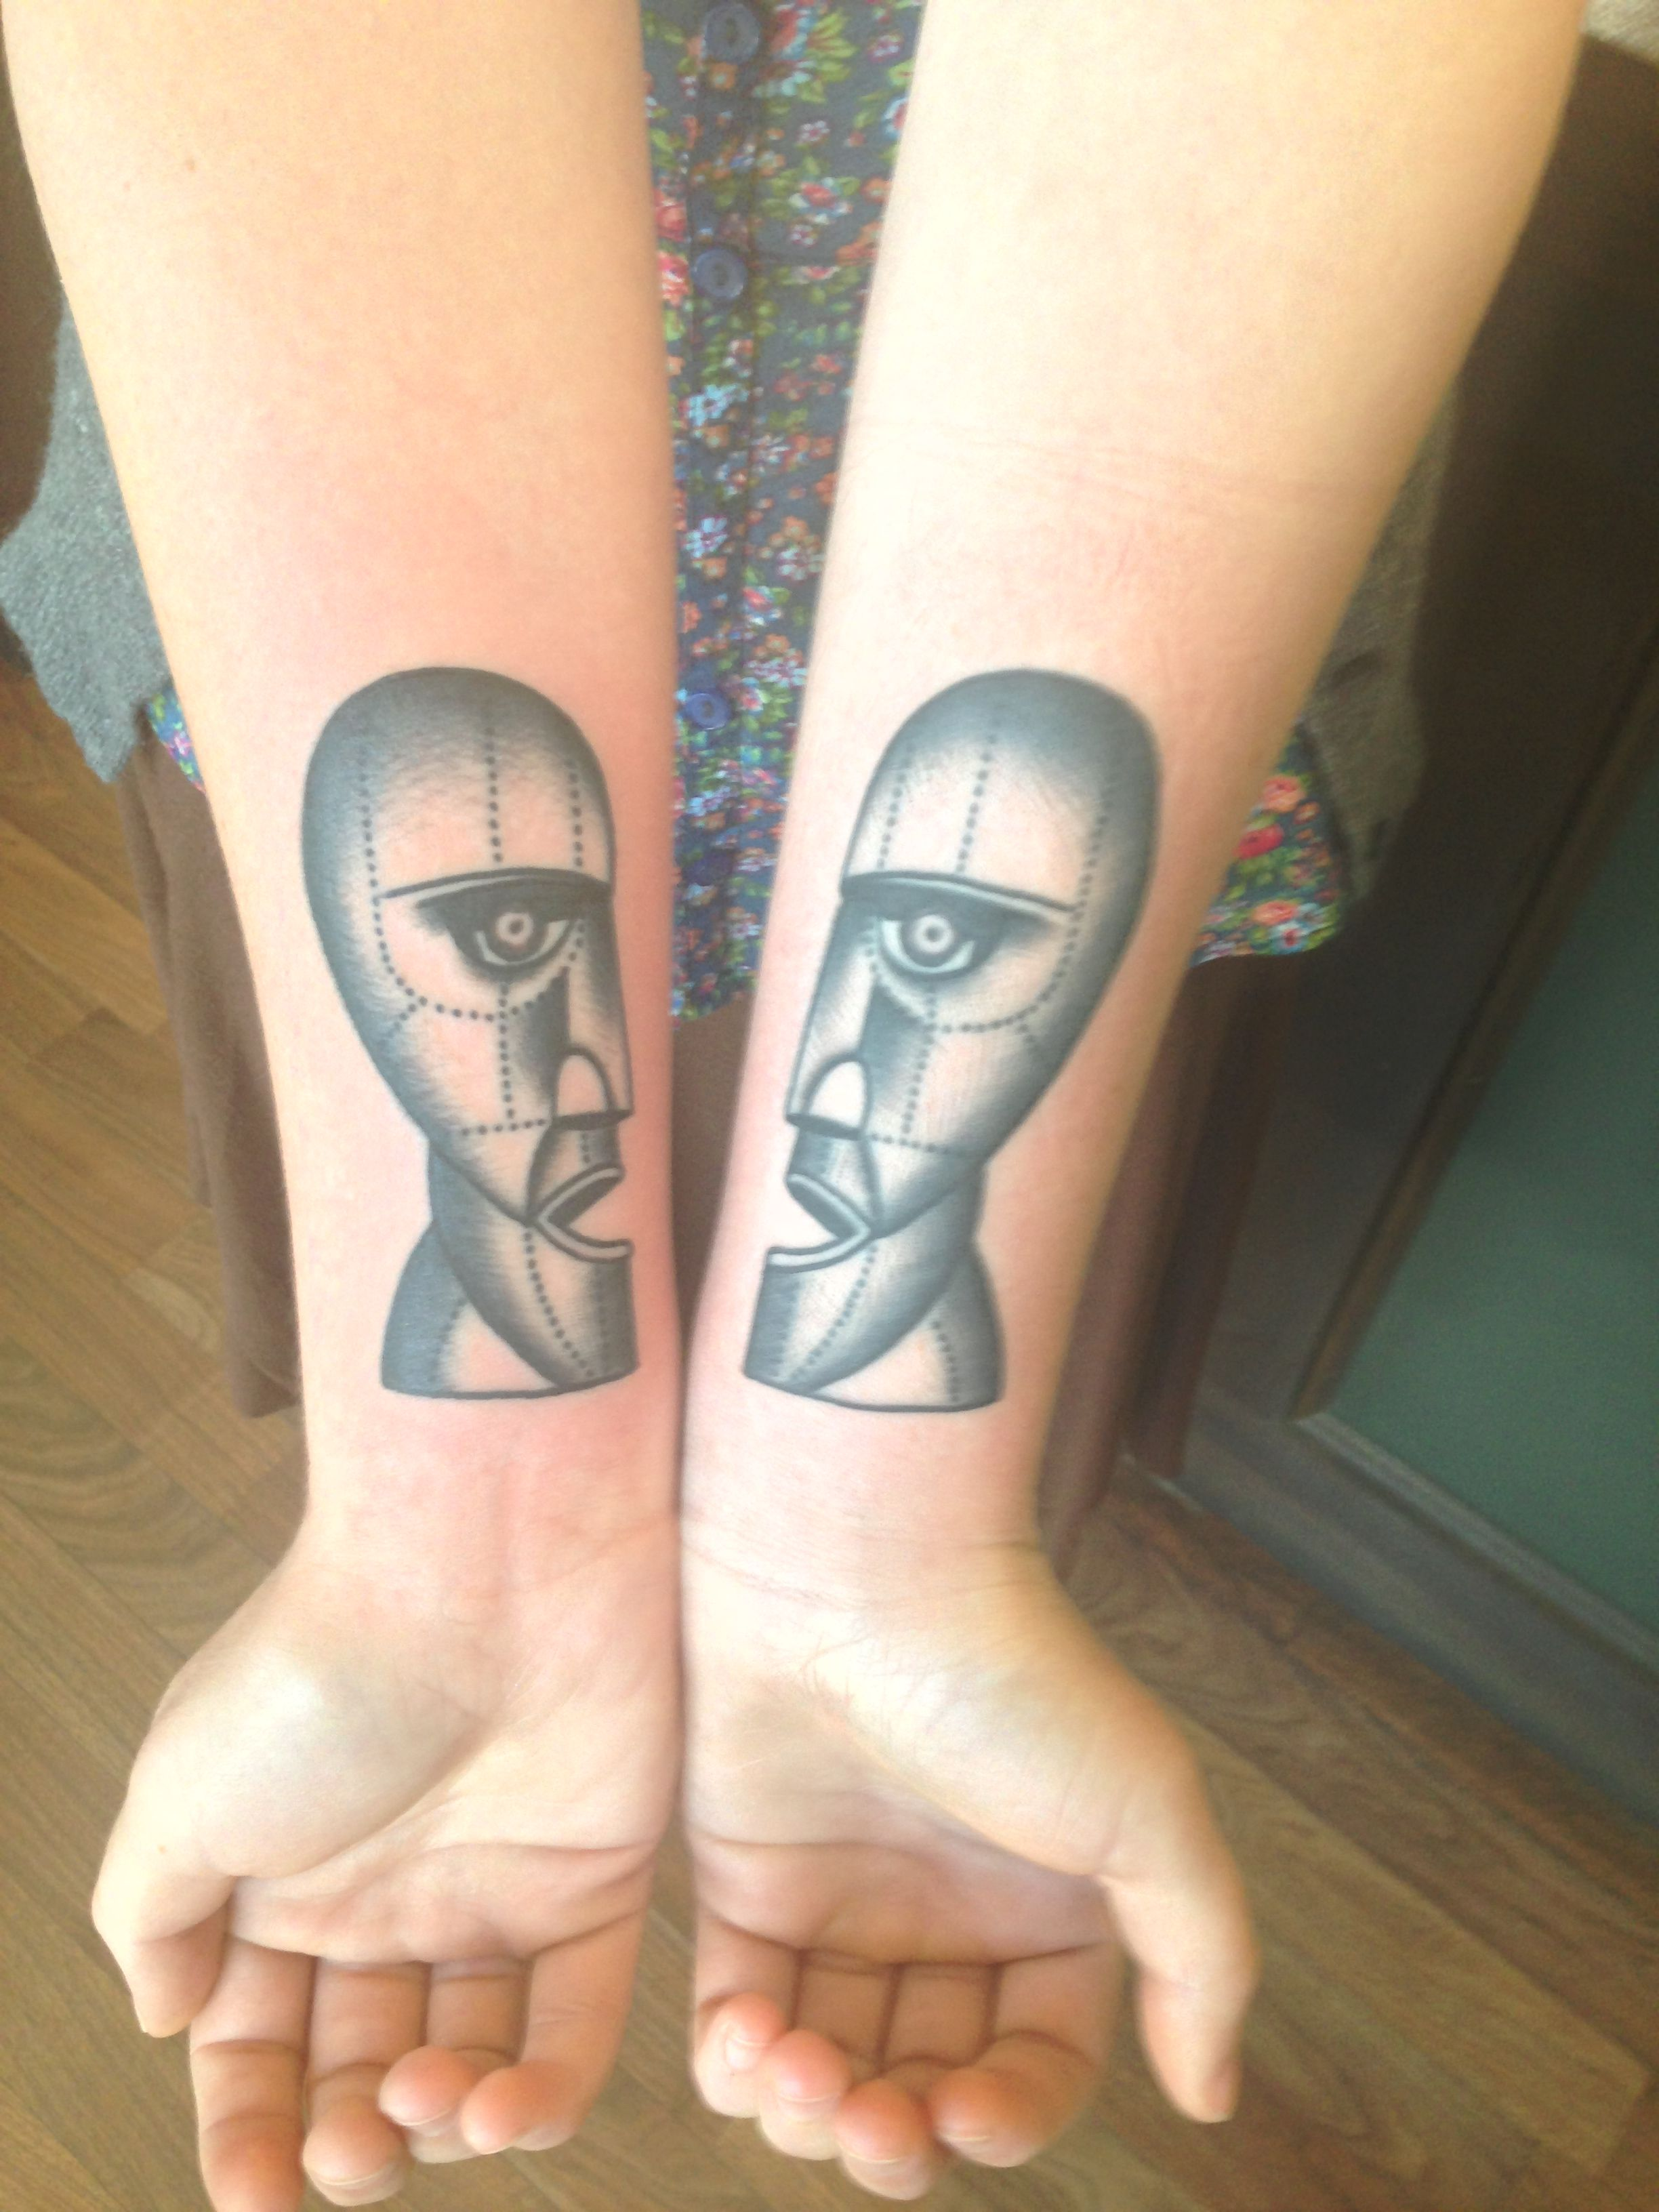 Pink Floyds Division Bell Tattoo Ink Belle Tattoo Hand